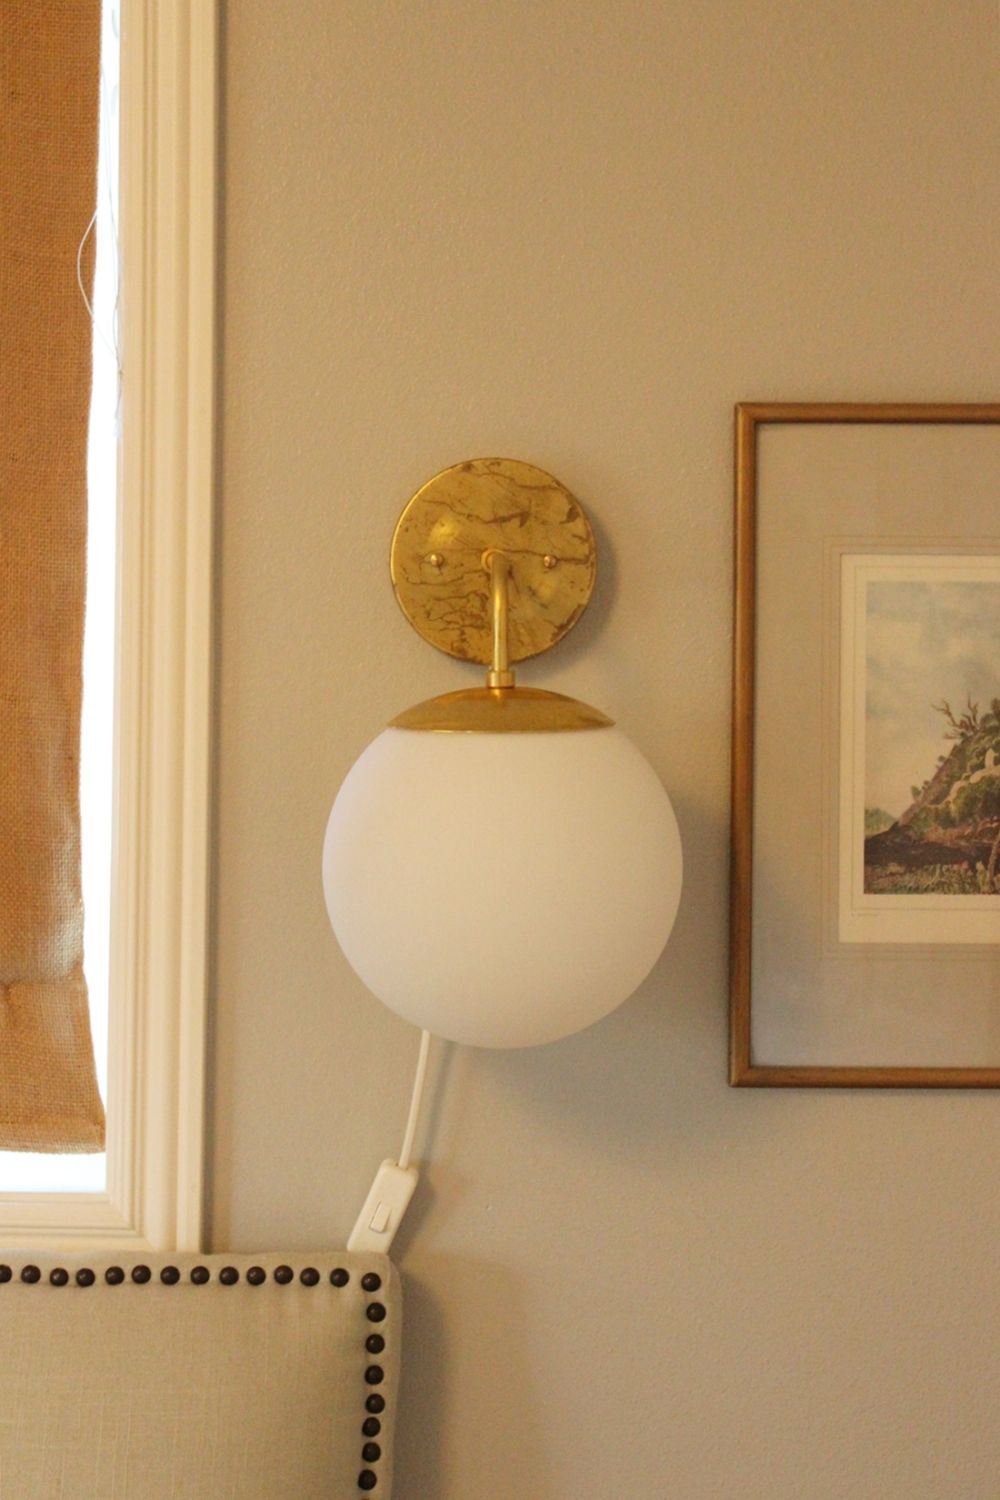 Wall Sconce Lights That Plug In Diy Globe Brass Wall Sconce